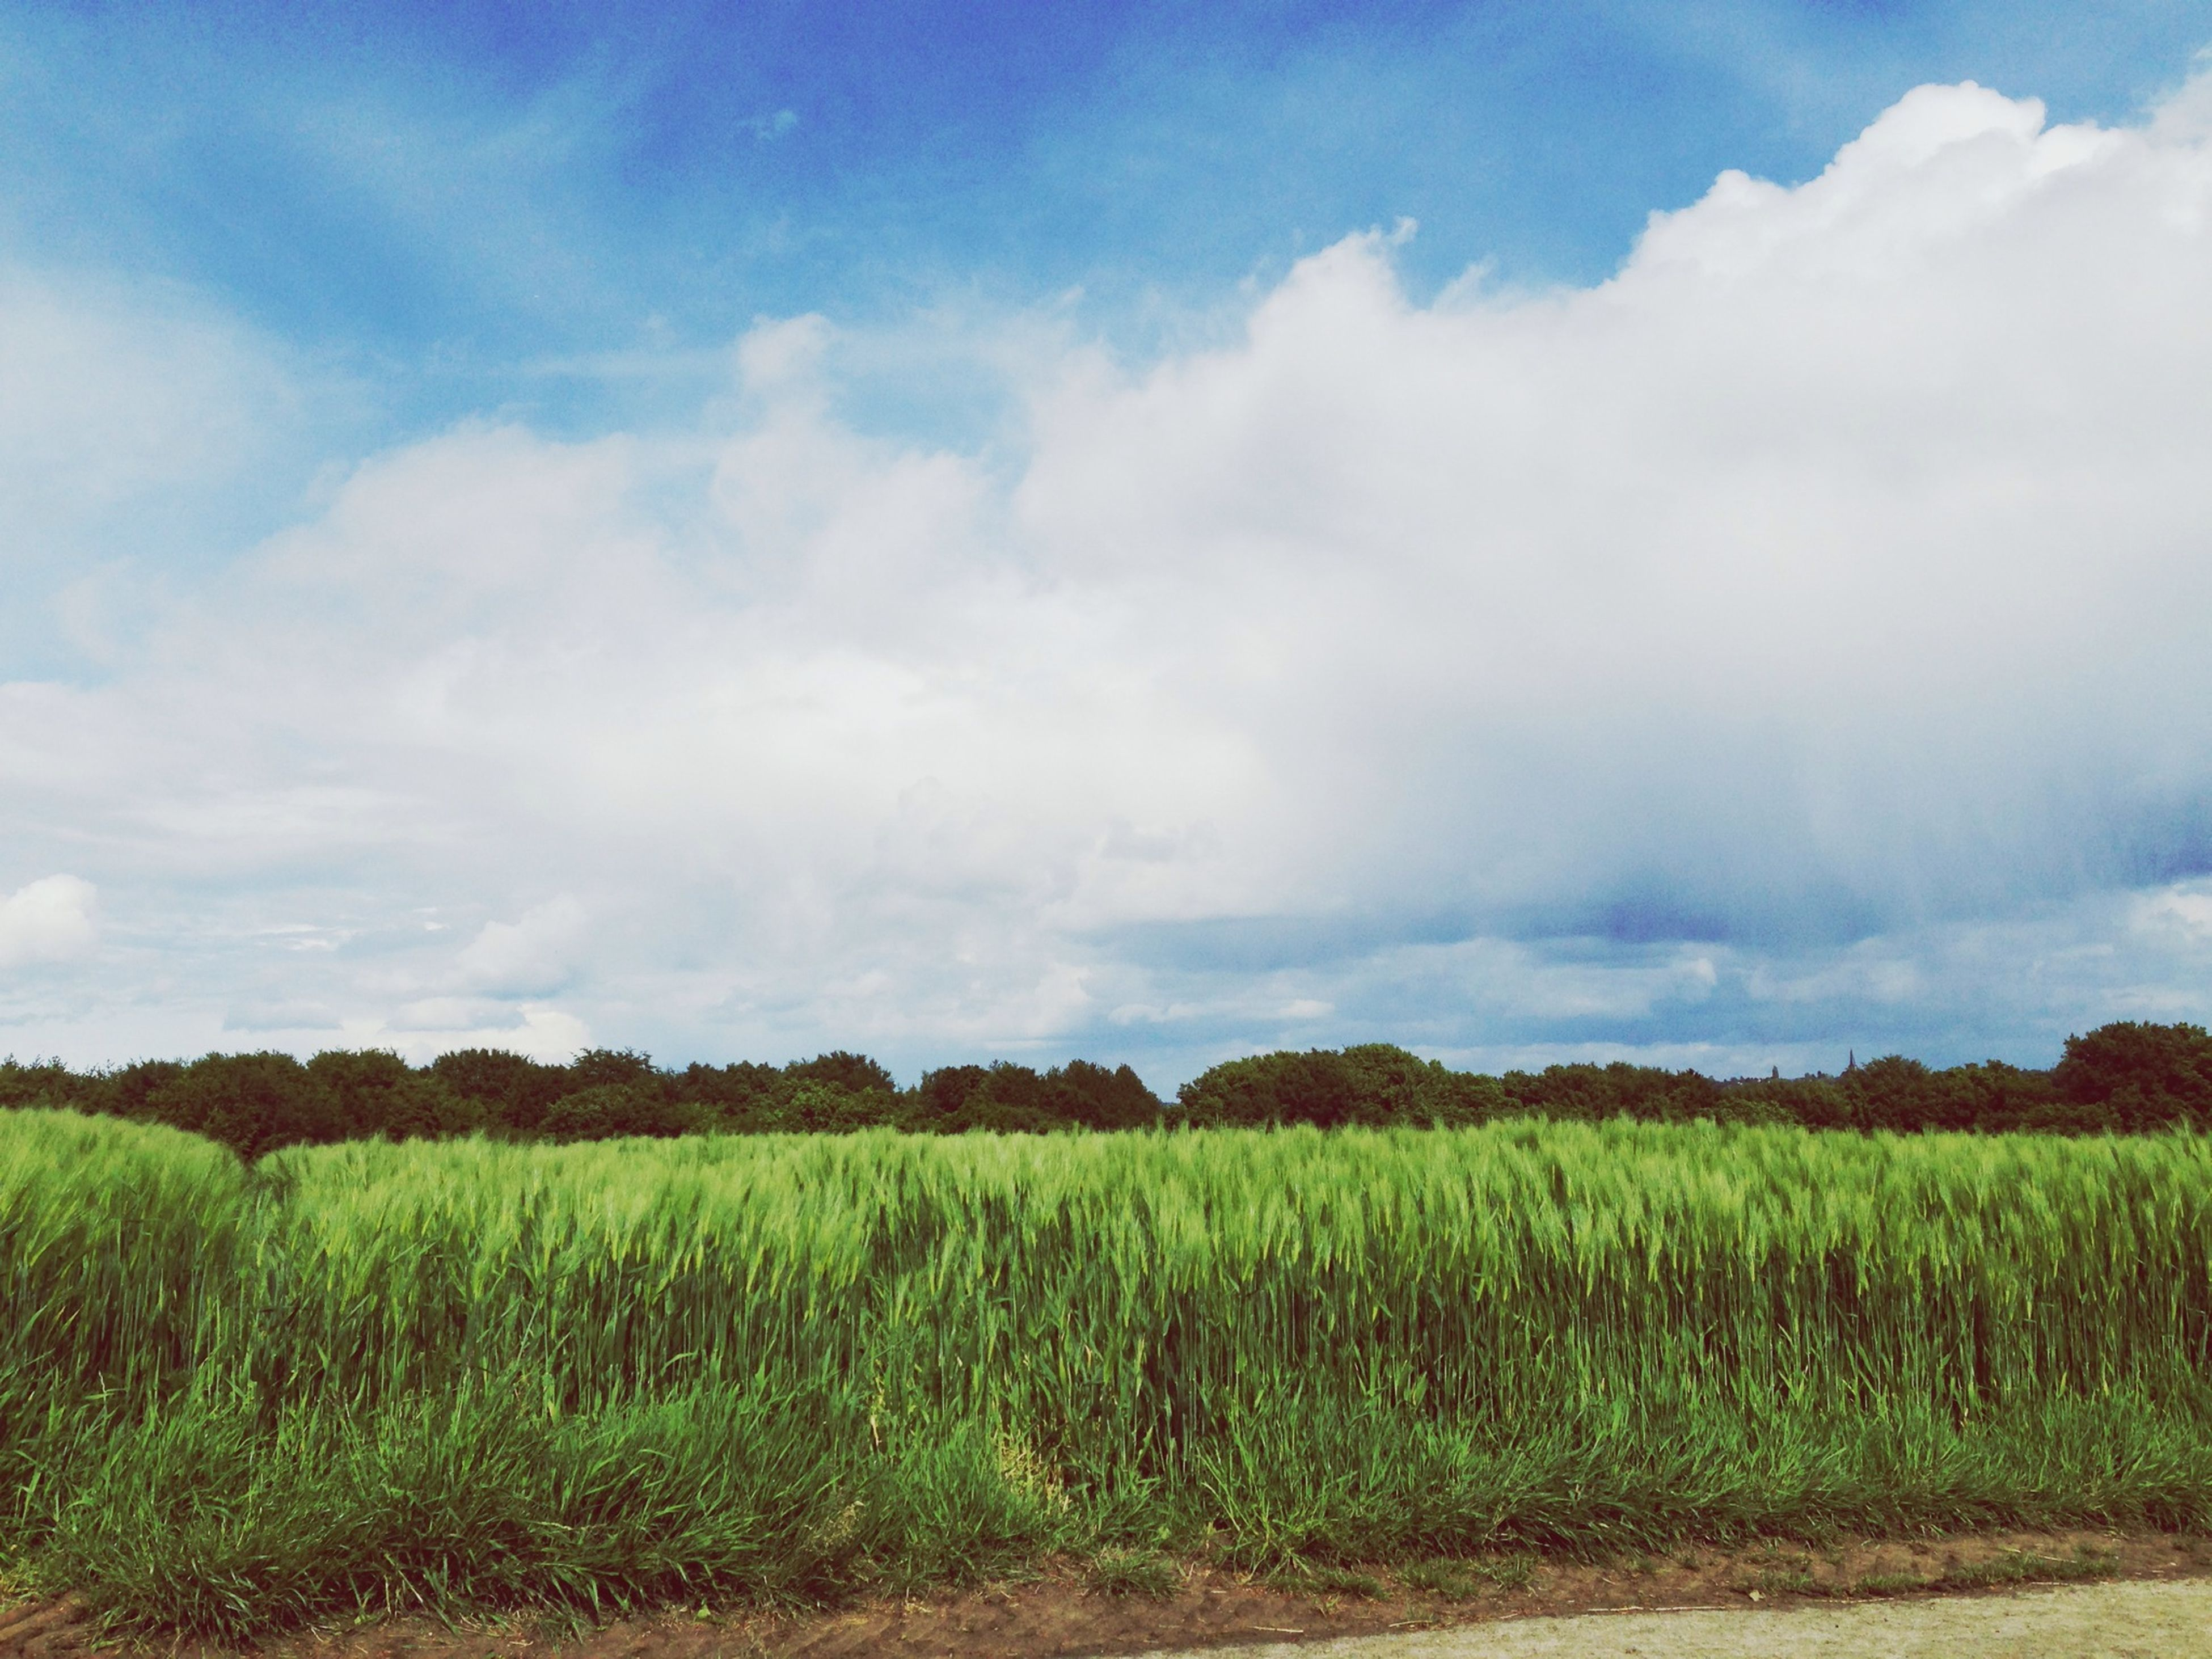 field, sky, growth, agriculture, tranquil scene, landscape, tranquility, rural scene, beauty in nature, nature, grass, crop, farm, scenics, cloud - sky, green color, plant, cloud, cultivated land, cloudy